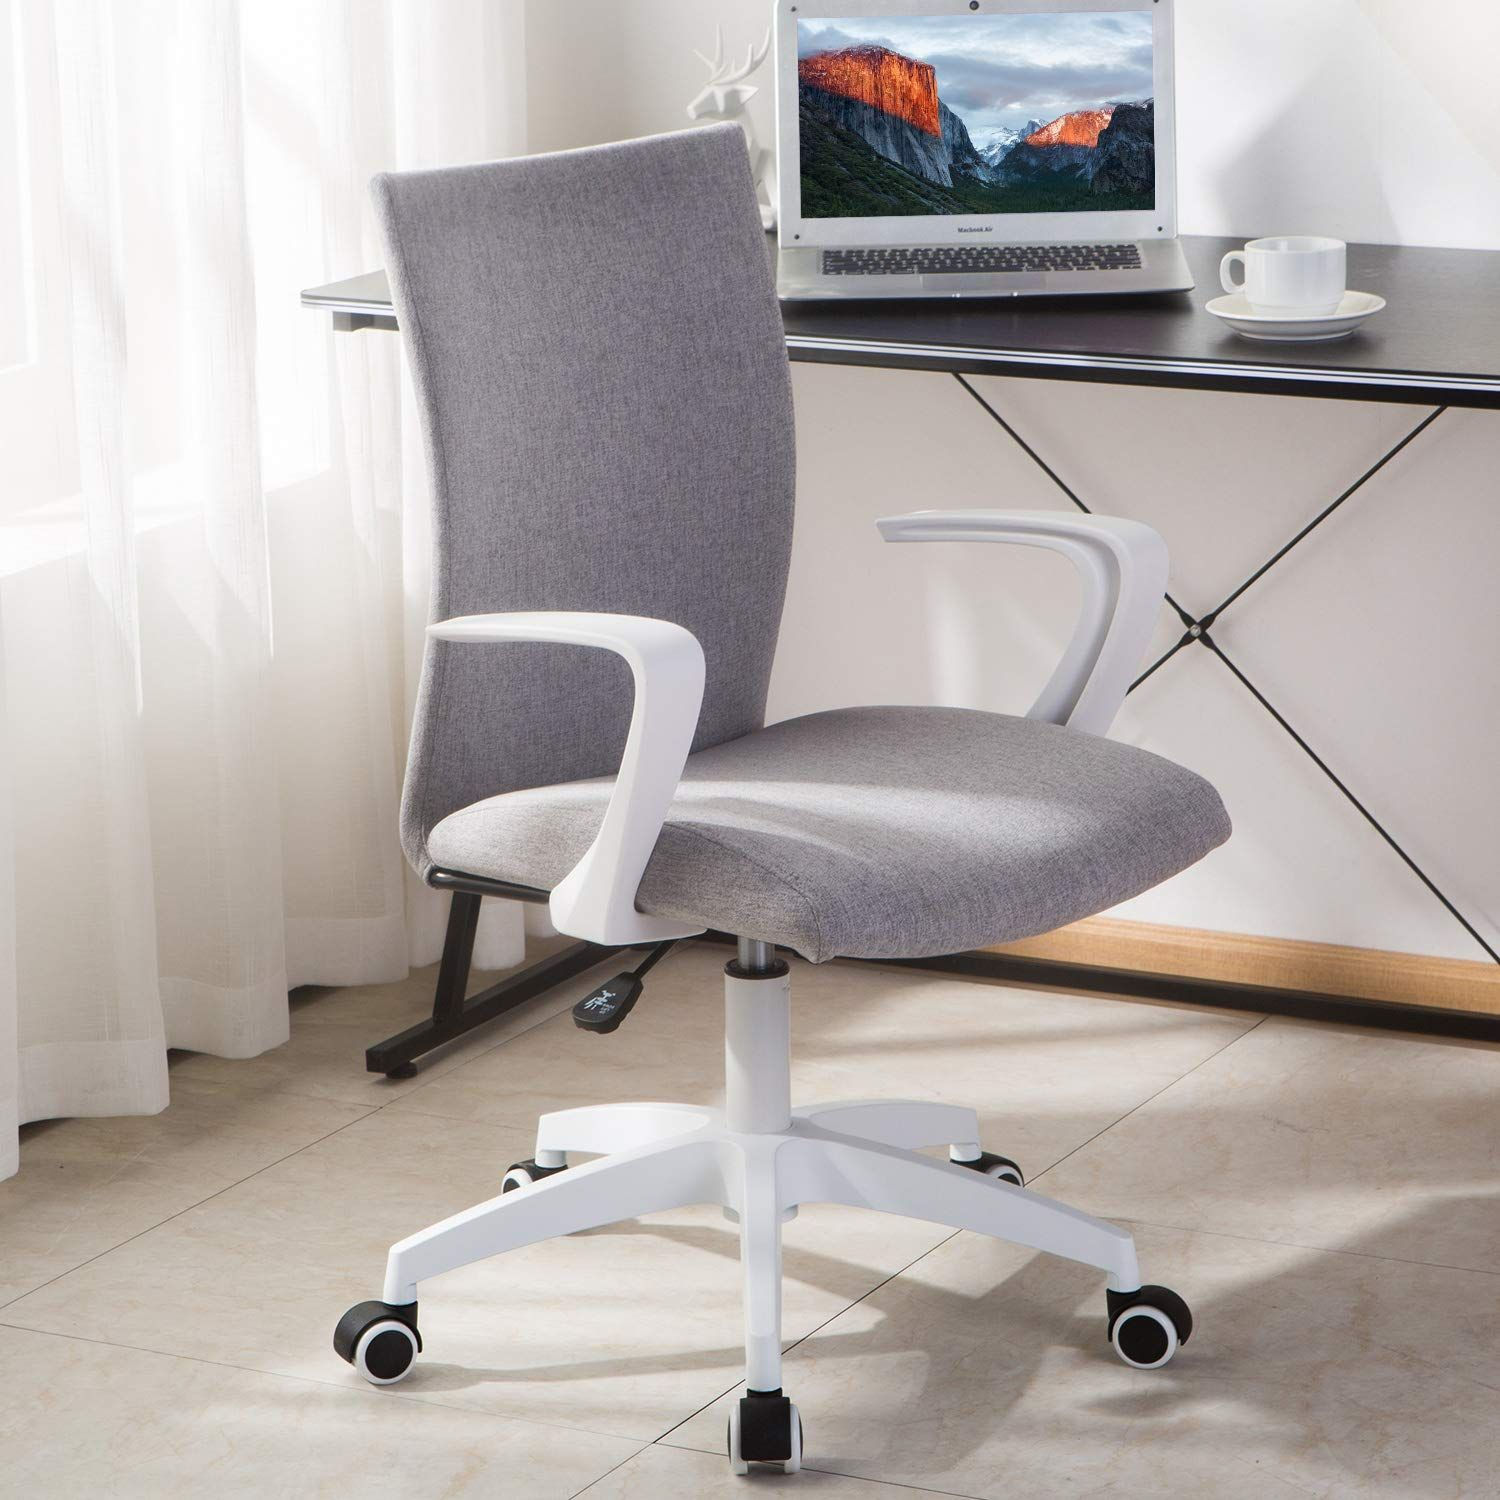 Novelland Office Desk Chair With Adjustable Height White Mordern